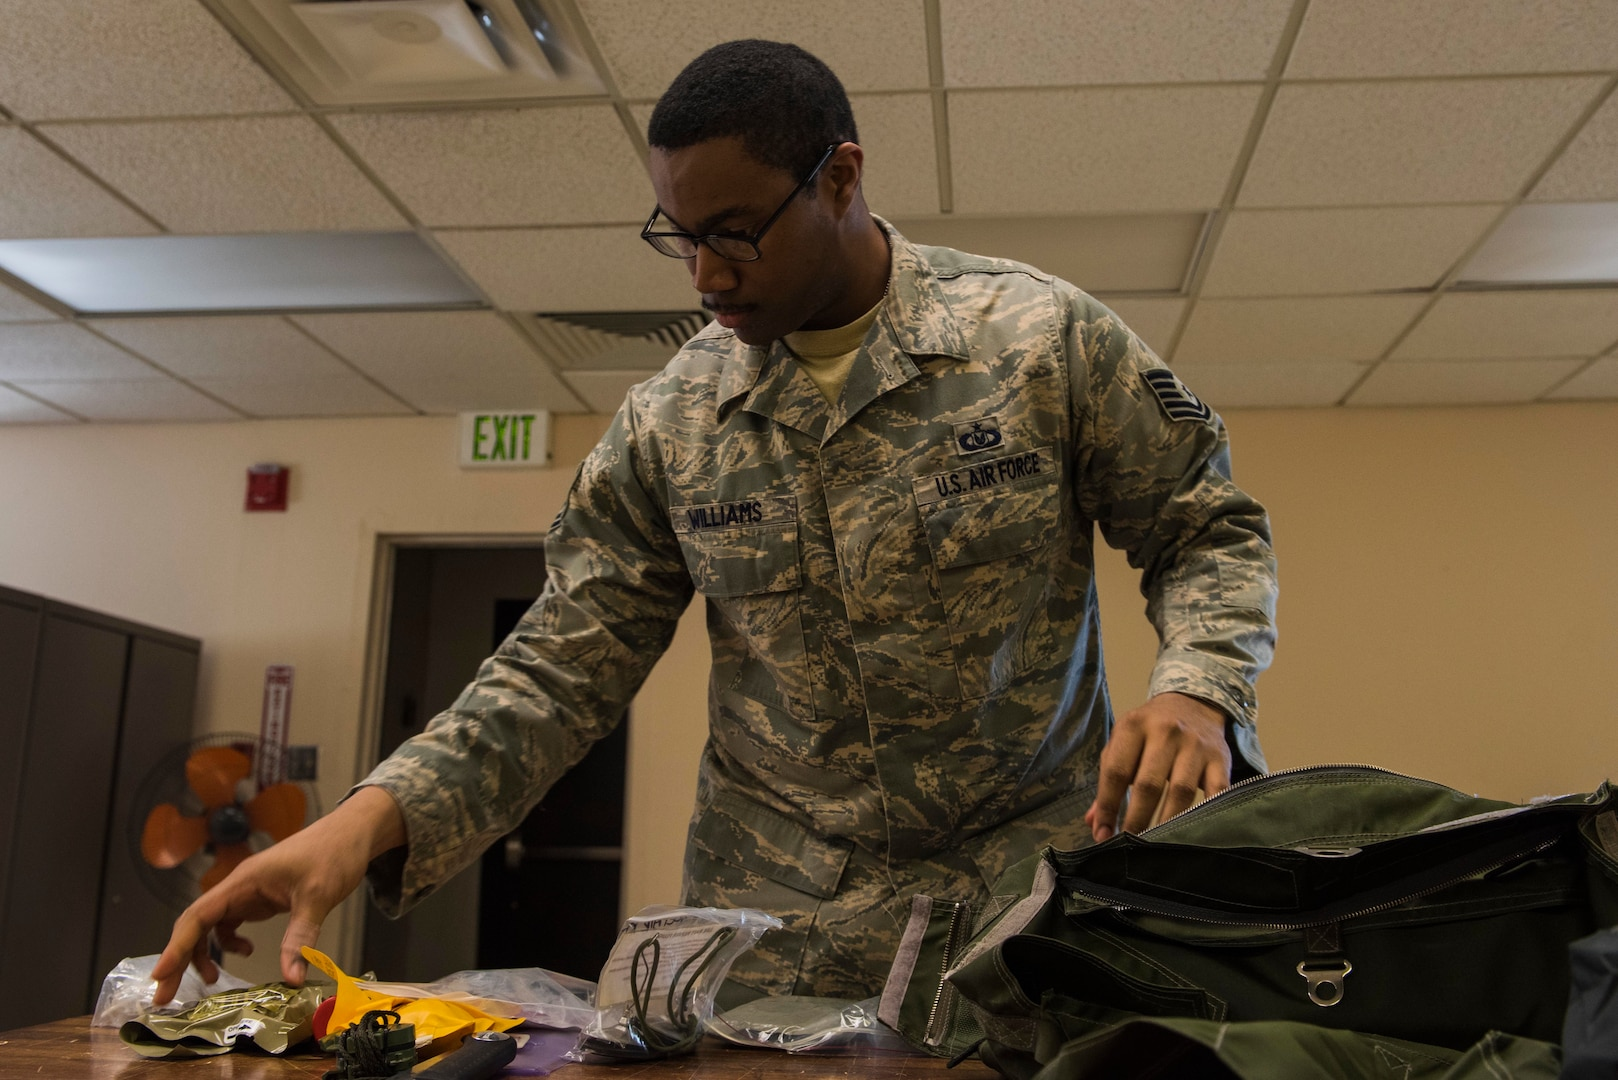 U.S. Air Force Tech. Sgt. John J. Williams, 354th Operations Support Squadron Aircrew Flight Equipment (AFE) flight quality assurance craftsman, packs an F-35A Lightning II survival bag at Eielson Air Force Base, Alaska, April 24, 2019. The AFE Airman's job is to enhance the probability of survival for downed pilots by supplying all aircraft survival equipment such as parachutes, helmets and survival kits. (U.S. Air Force photo by Airman 1st Class Aaron Larue Guerrisky)